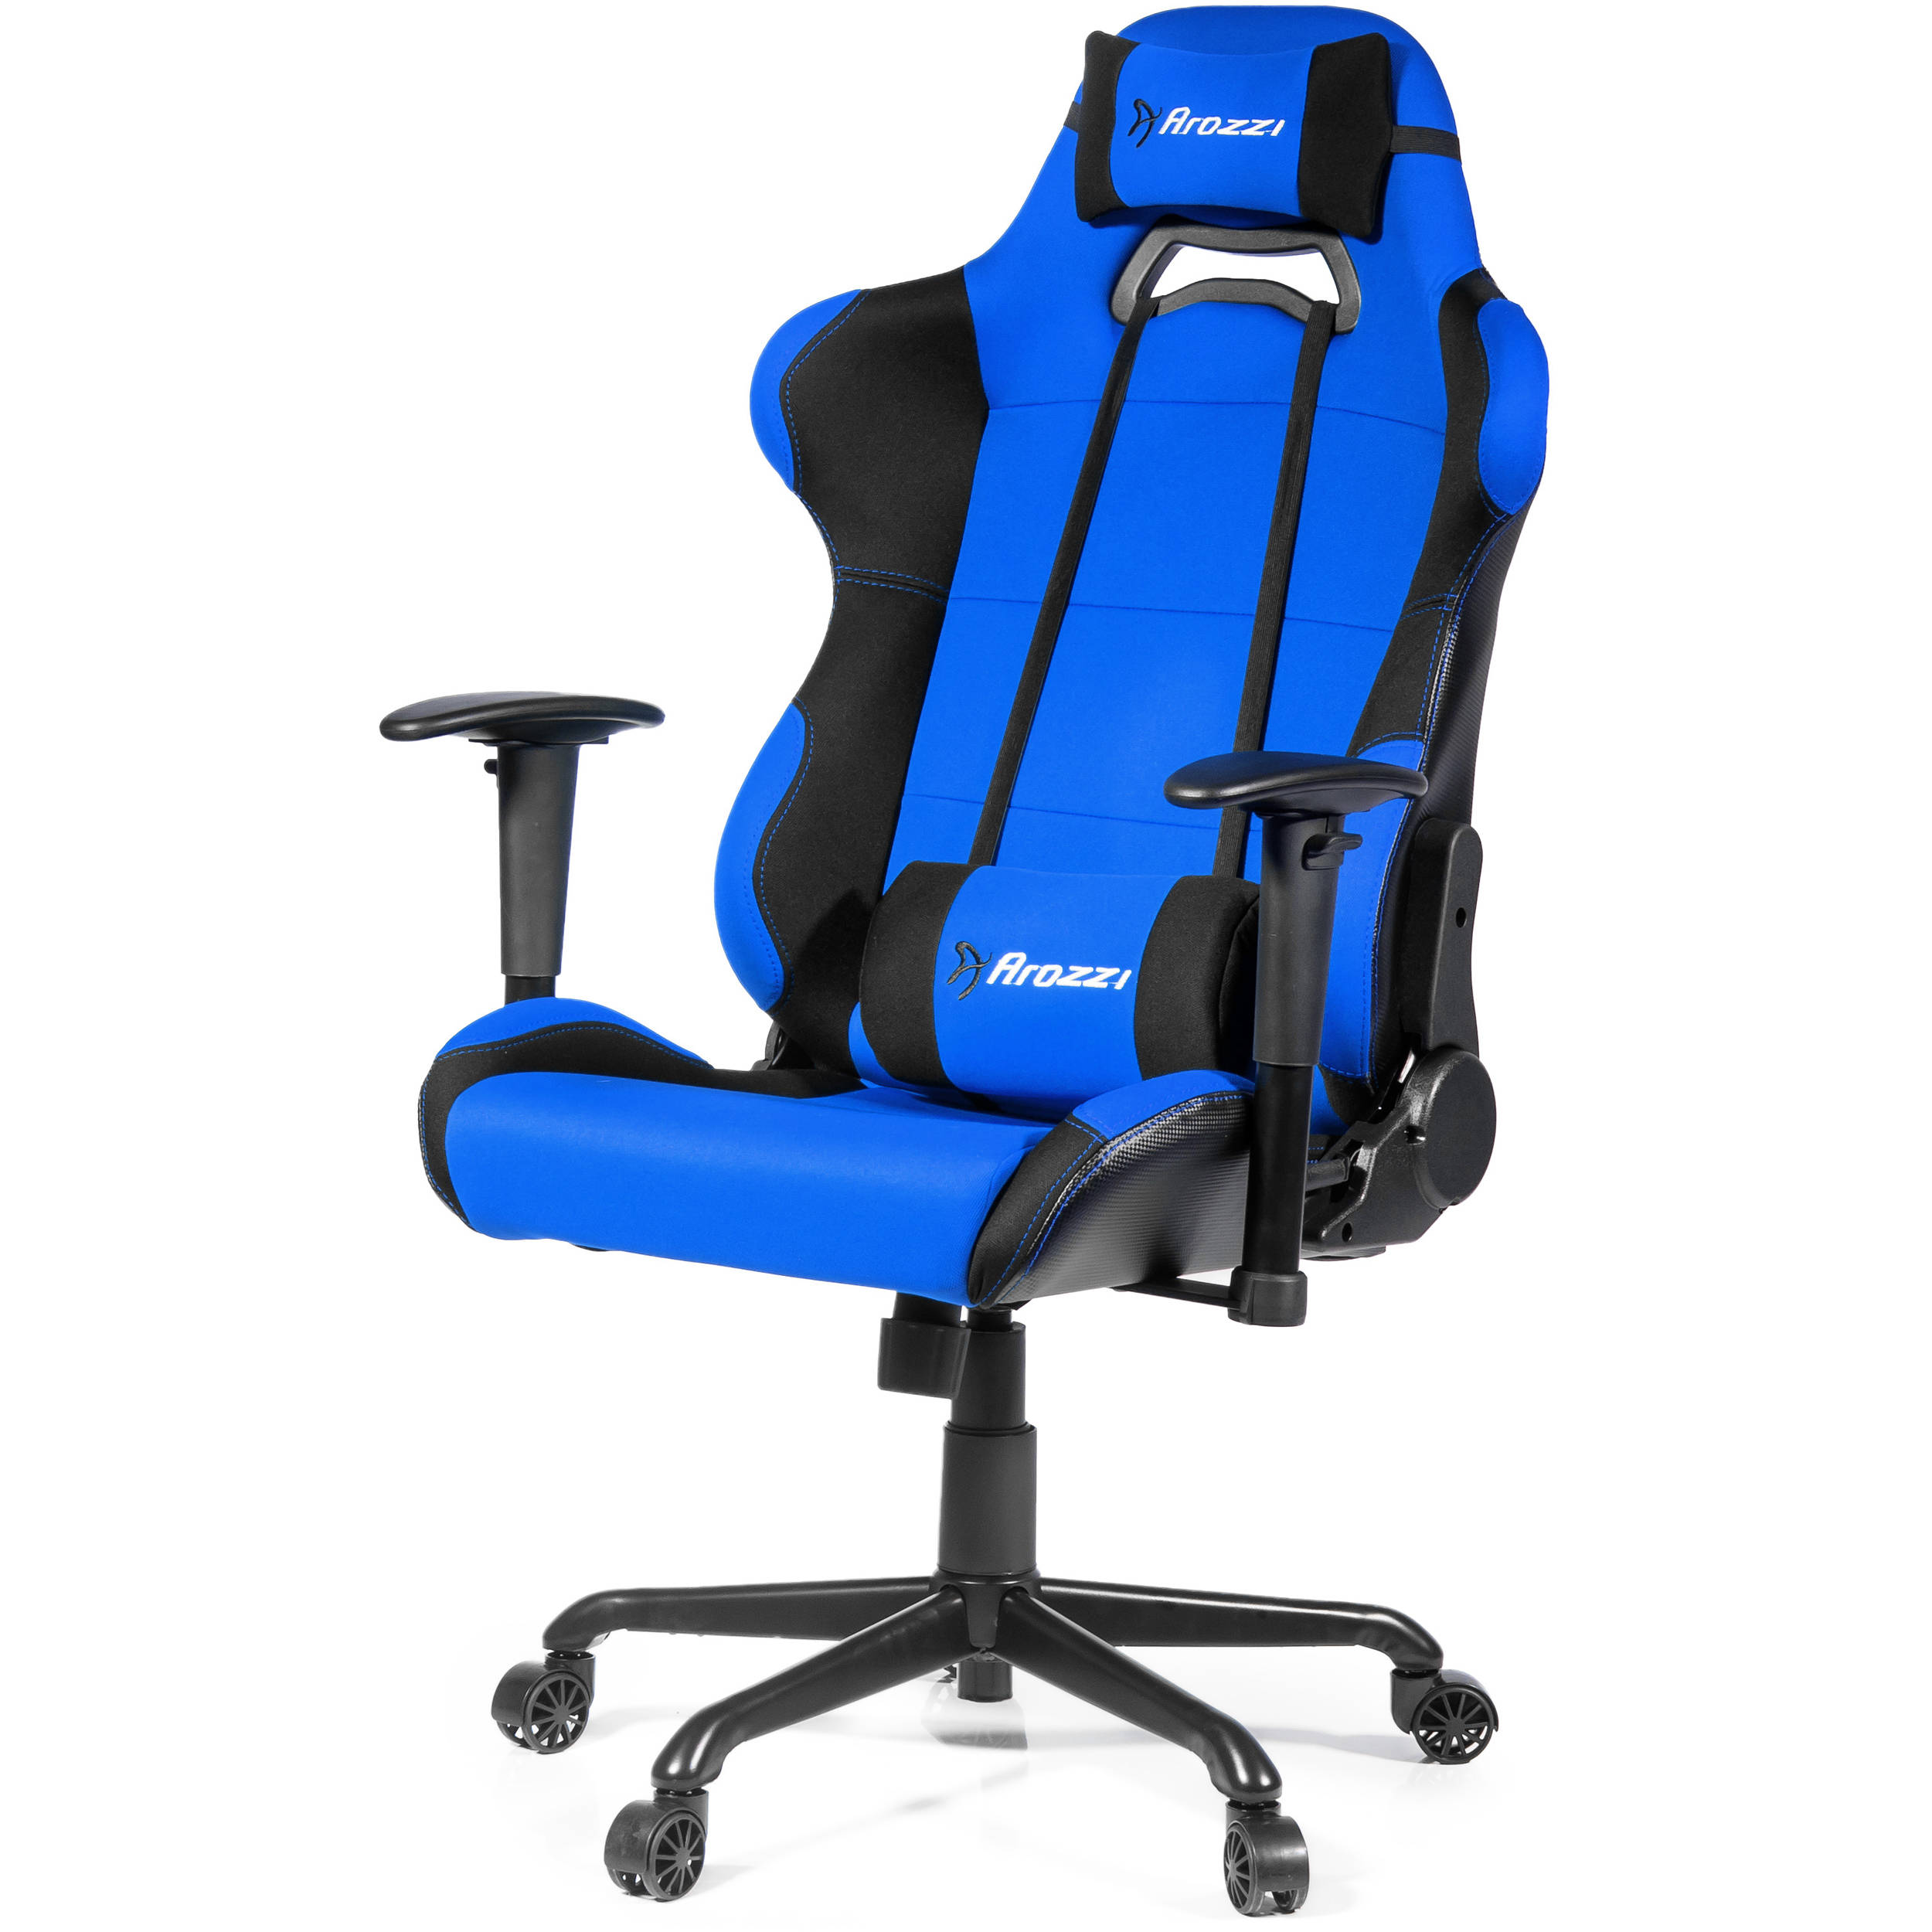 Arozzi Torretta XL Gaming Chair (Blue)  sc 1 st  Bu0026H & Arozzi Torretta XL Gaming Chair (Blue) TORRETTA-XLF-BL Bu0026H Photo